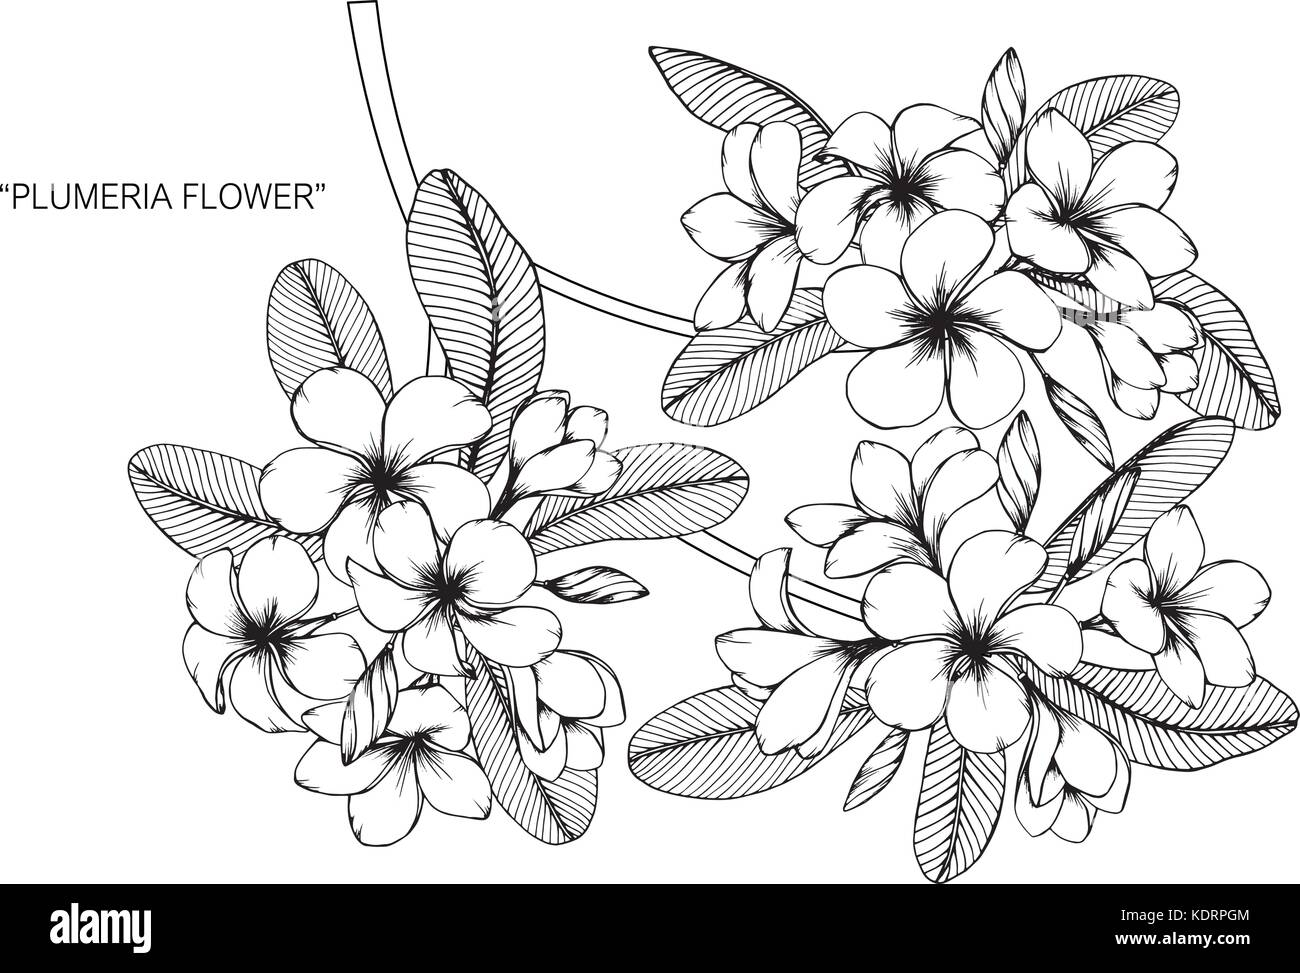 Plumeria Flower Drawing Illustration Black And White With Line Art Stock Vector Image Art Alamy